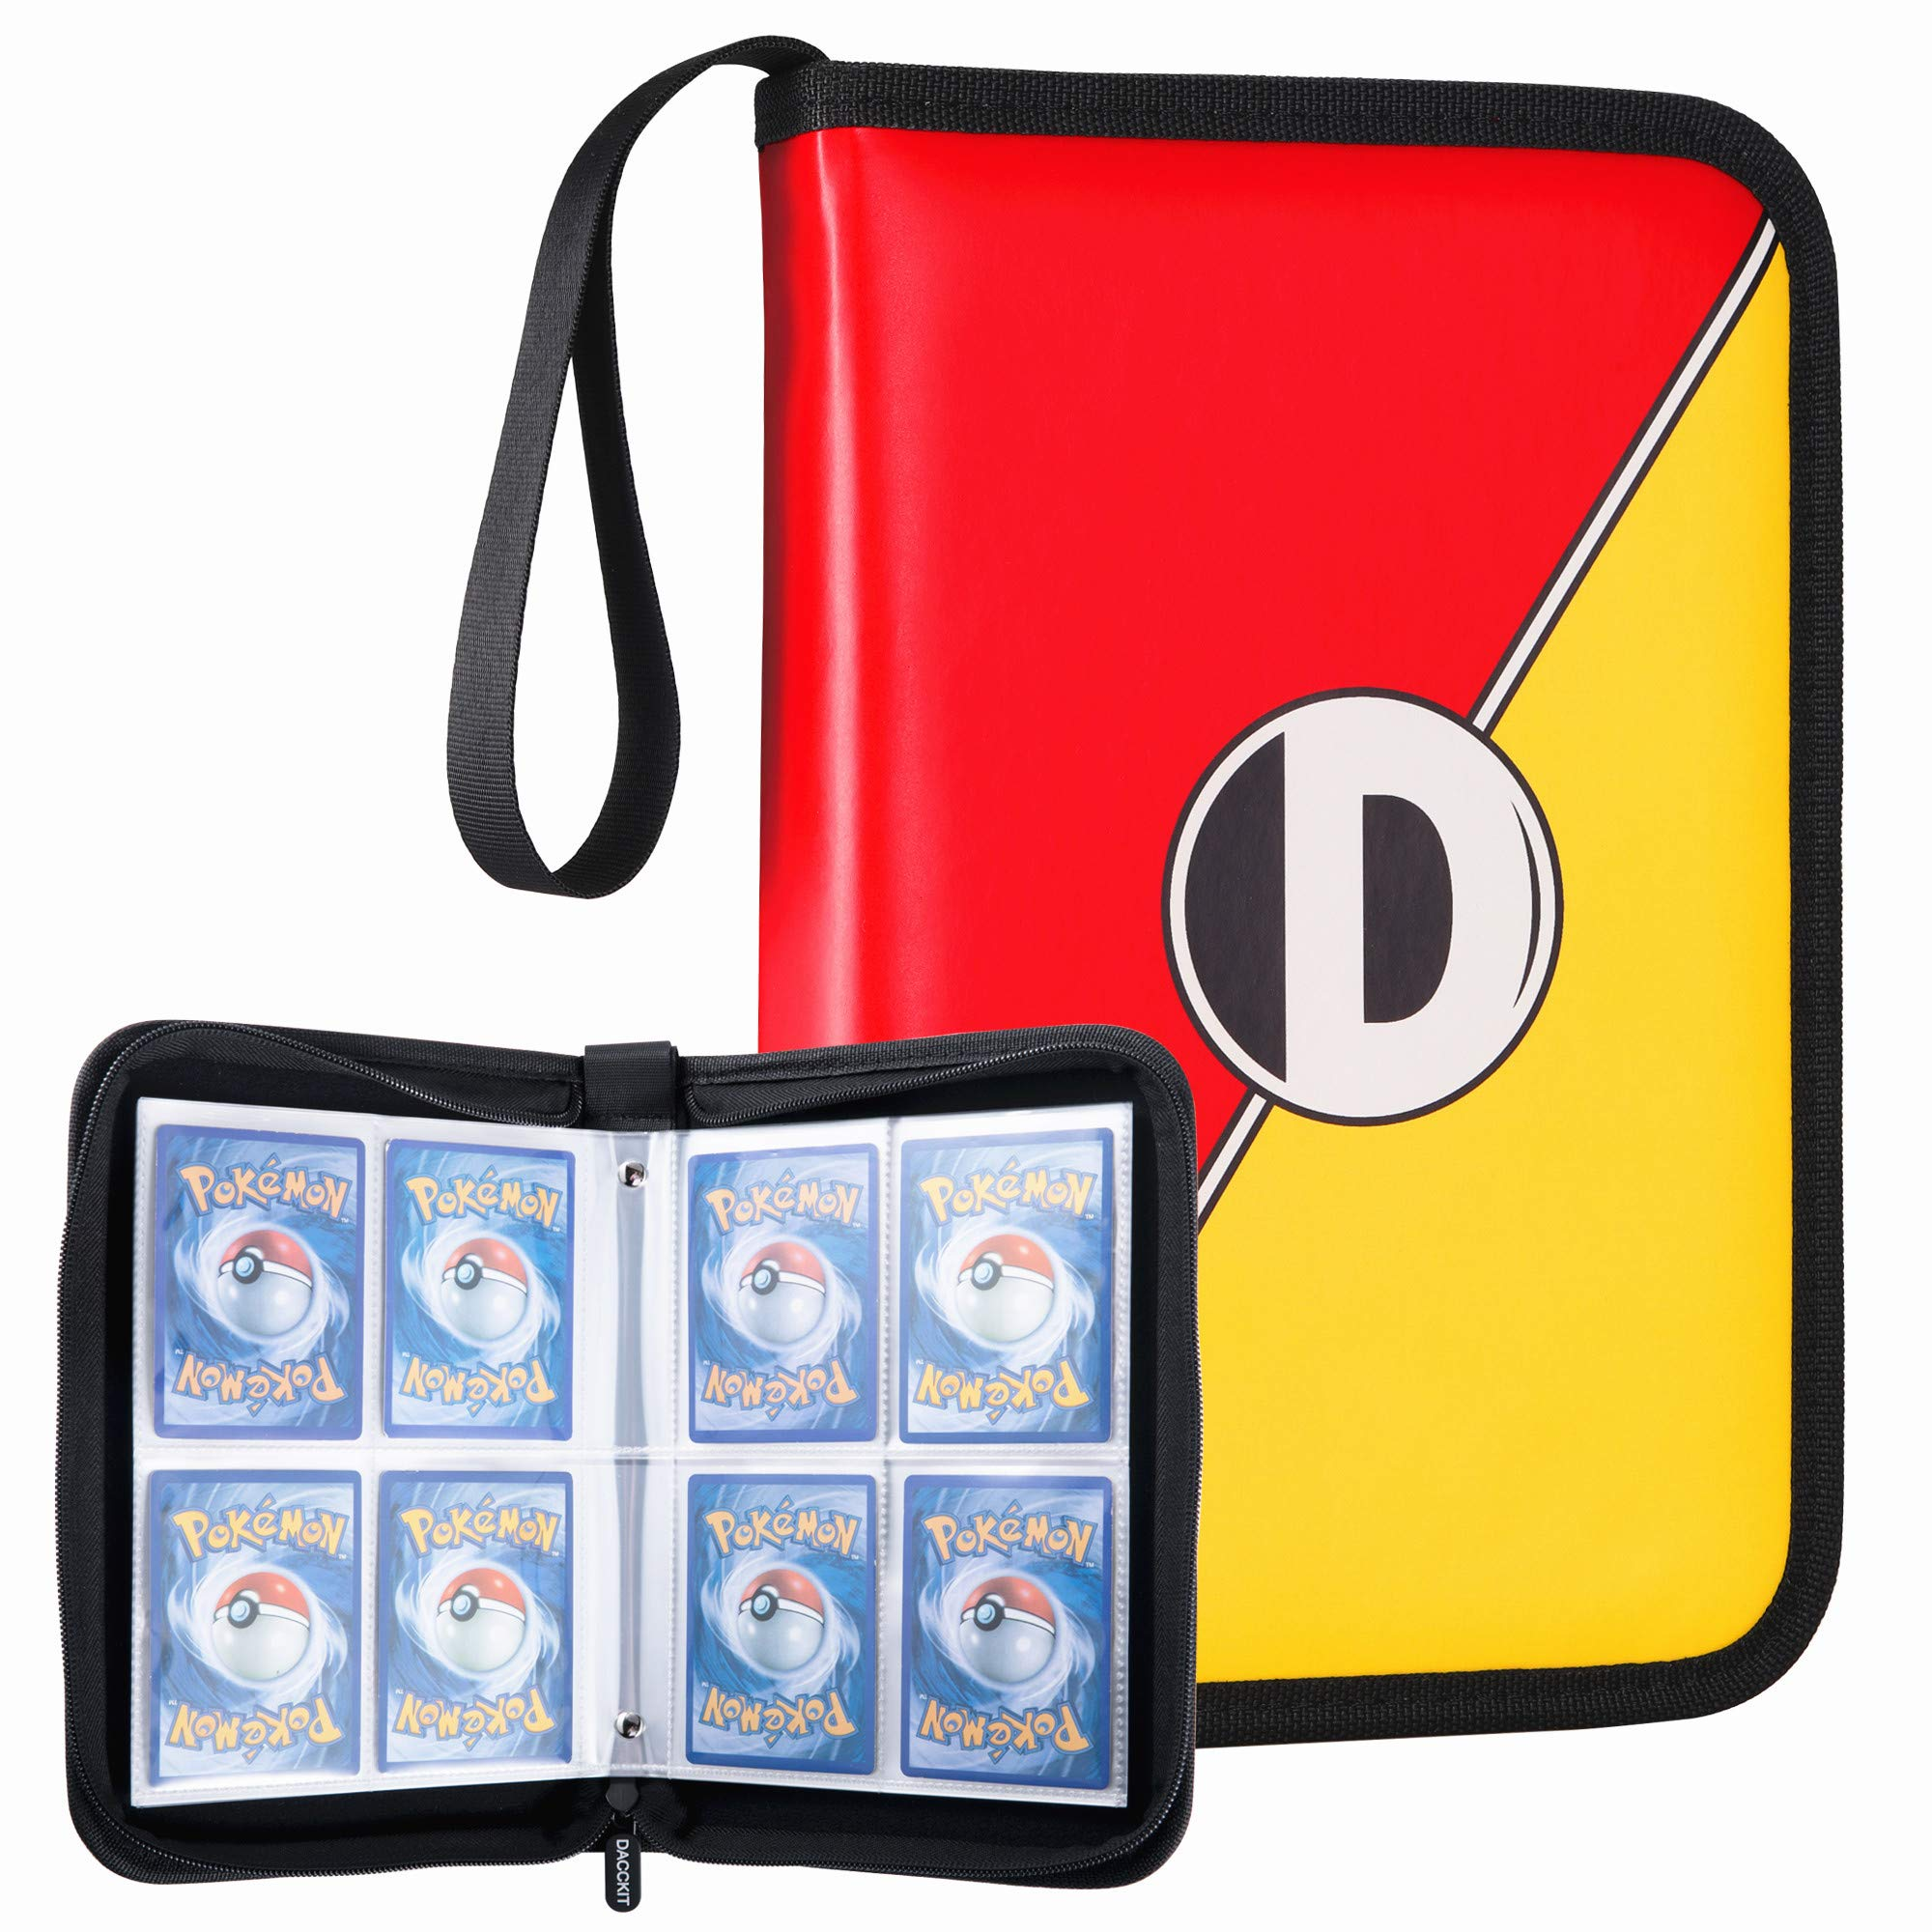 D DACCKIT Carrying Case Compatible with Pokemon Trading Cards, Cards Collectors Album with 20 Premium 4-Pocket Pages, Holds Up to 320 Cards